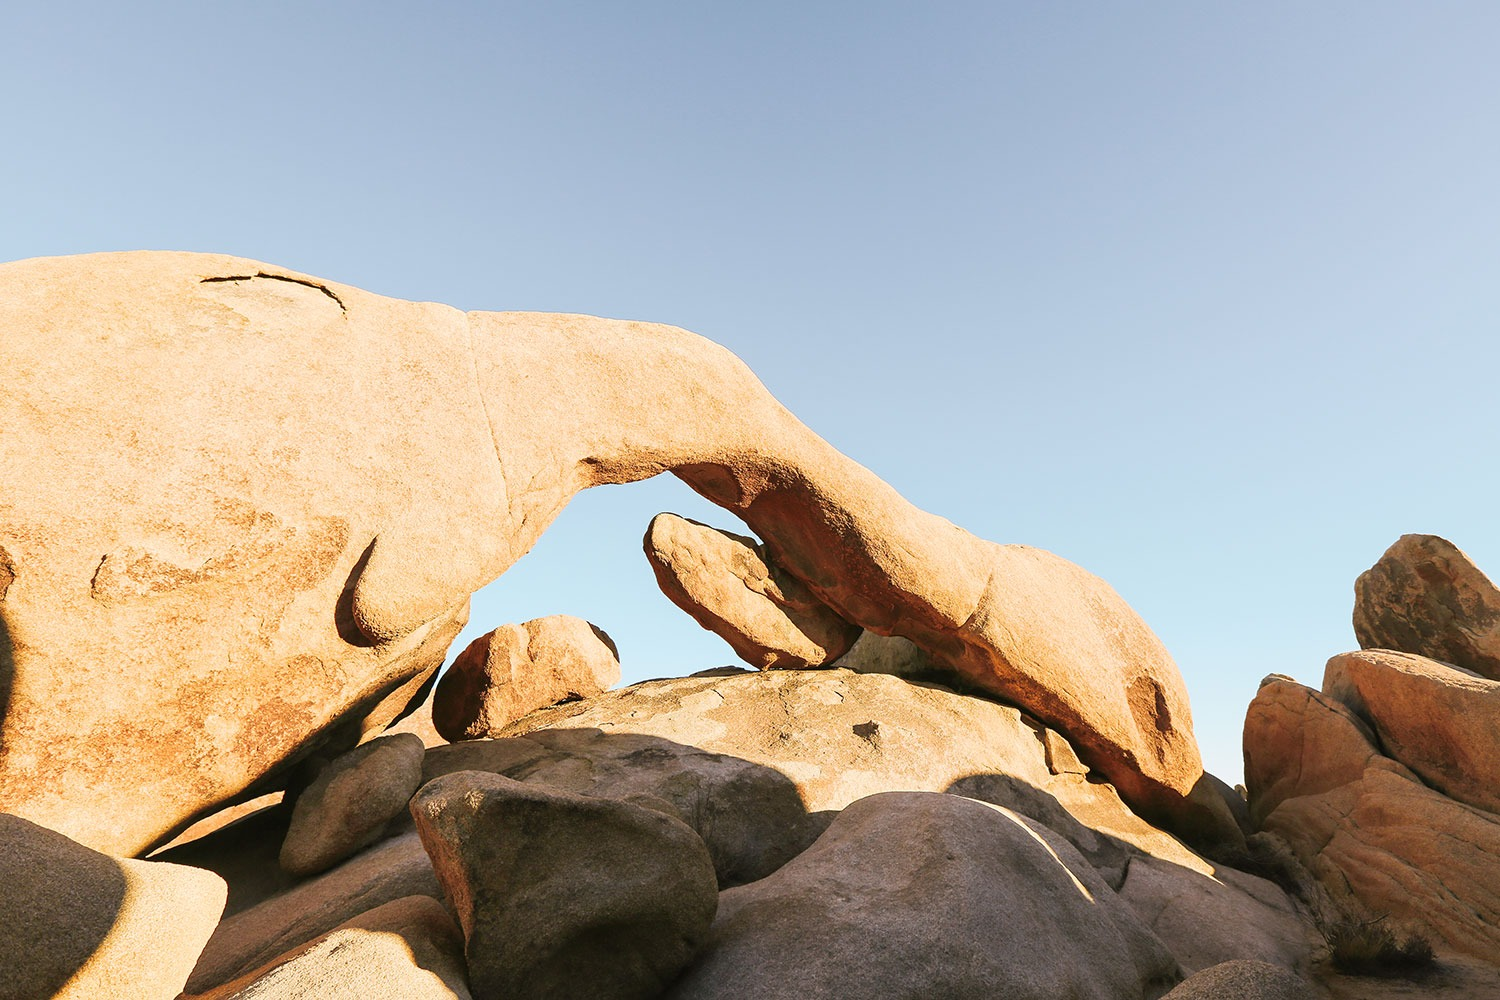 Arch at Arch Rock Trail in Joshua Tree